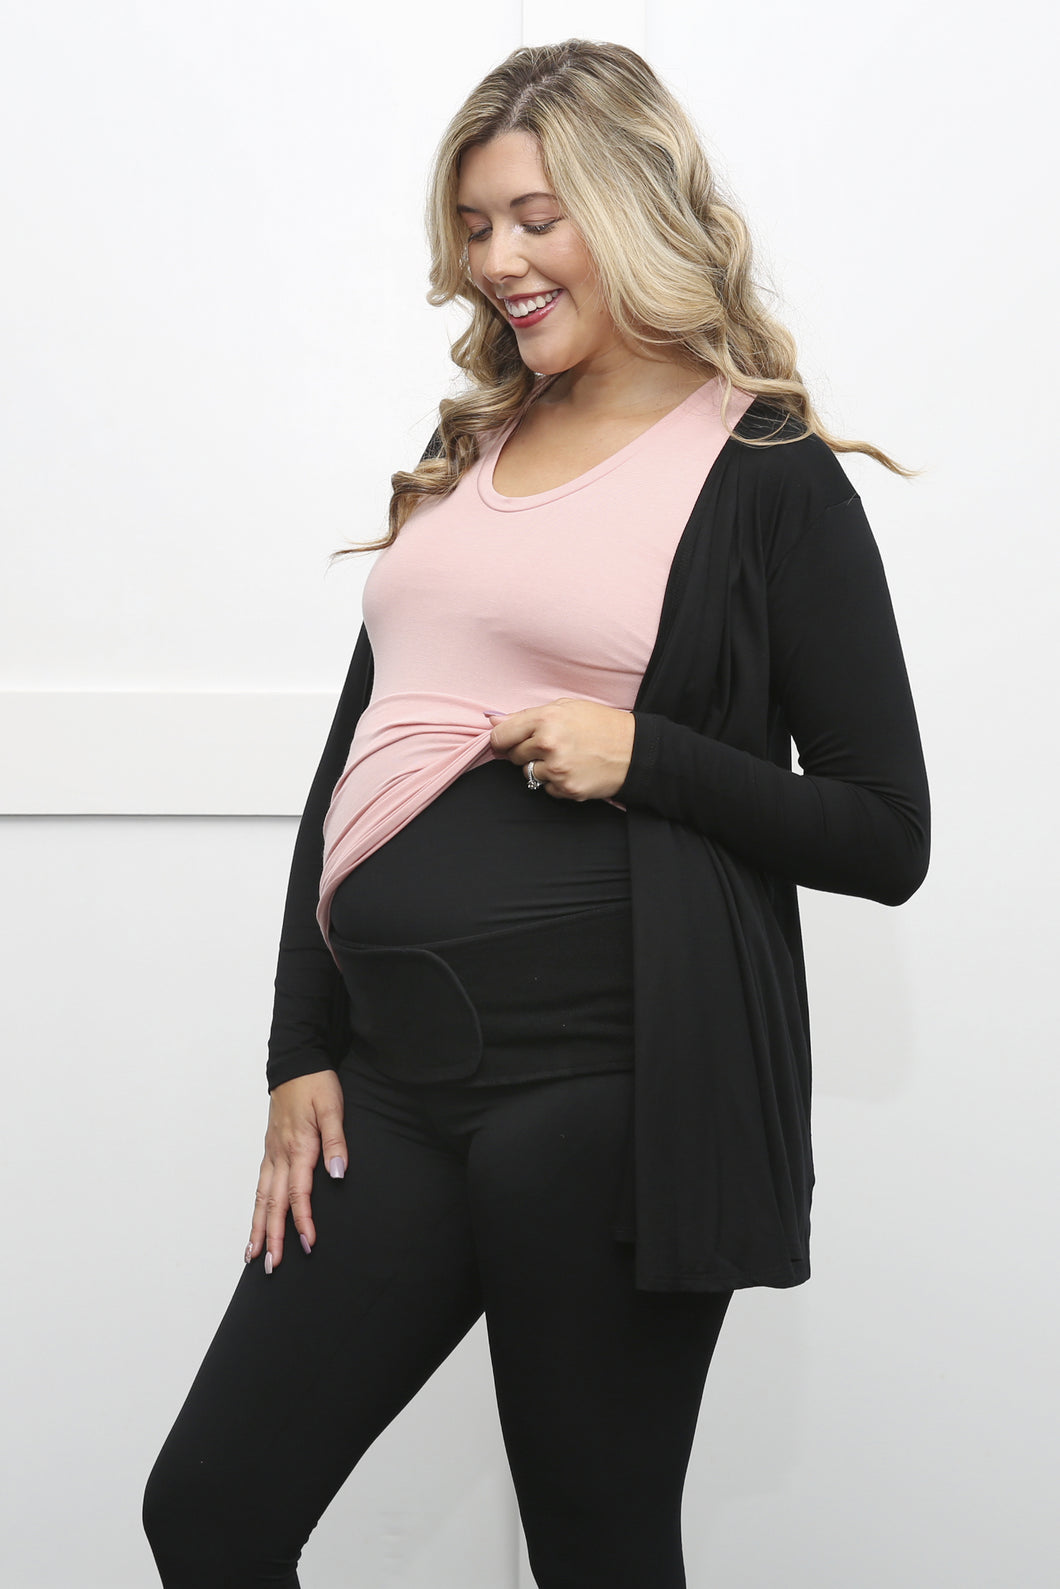 Maternity Bundle: The goodbody goodmommy maternity leggings and Multitasking Cardigan